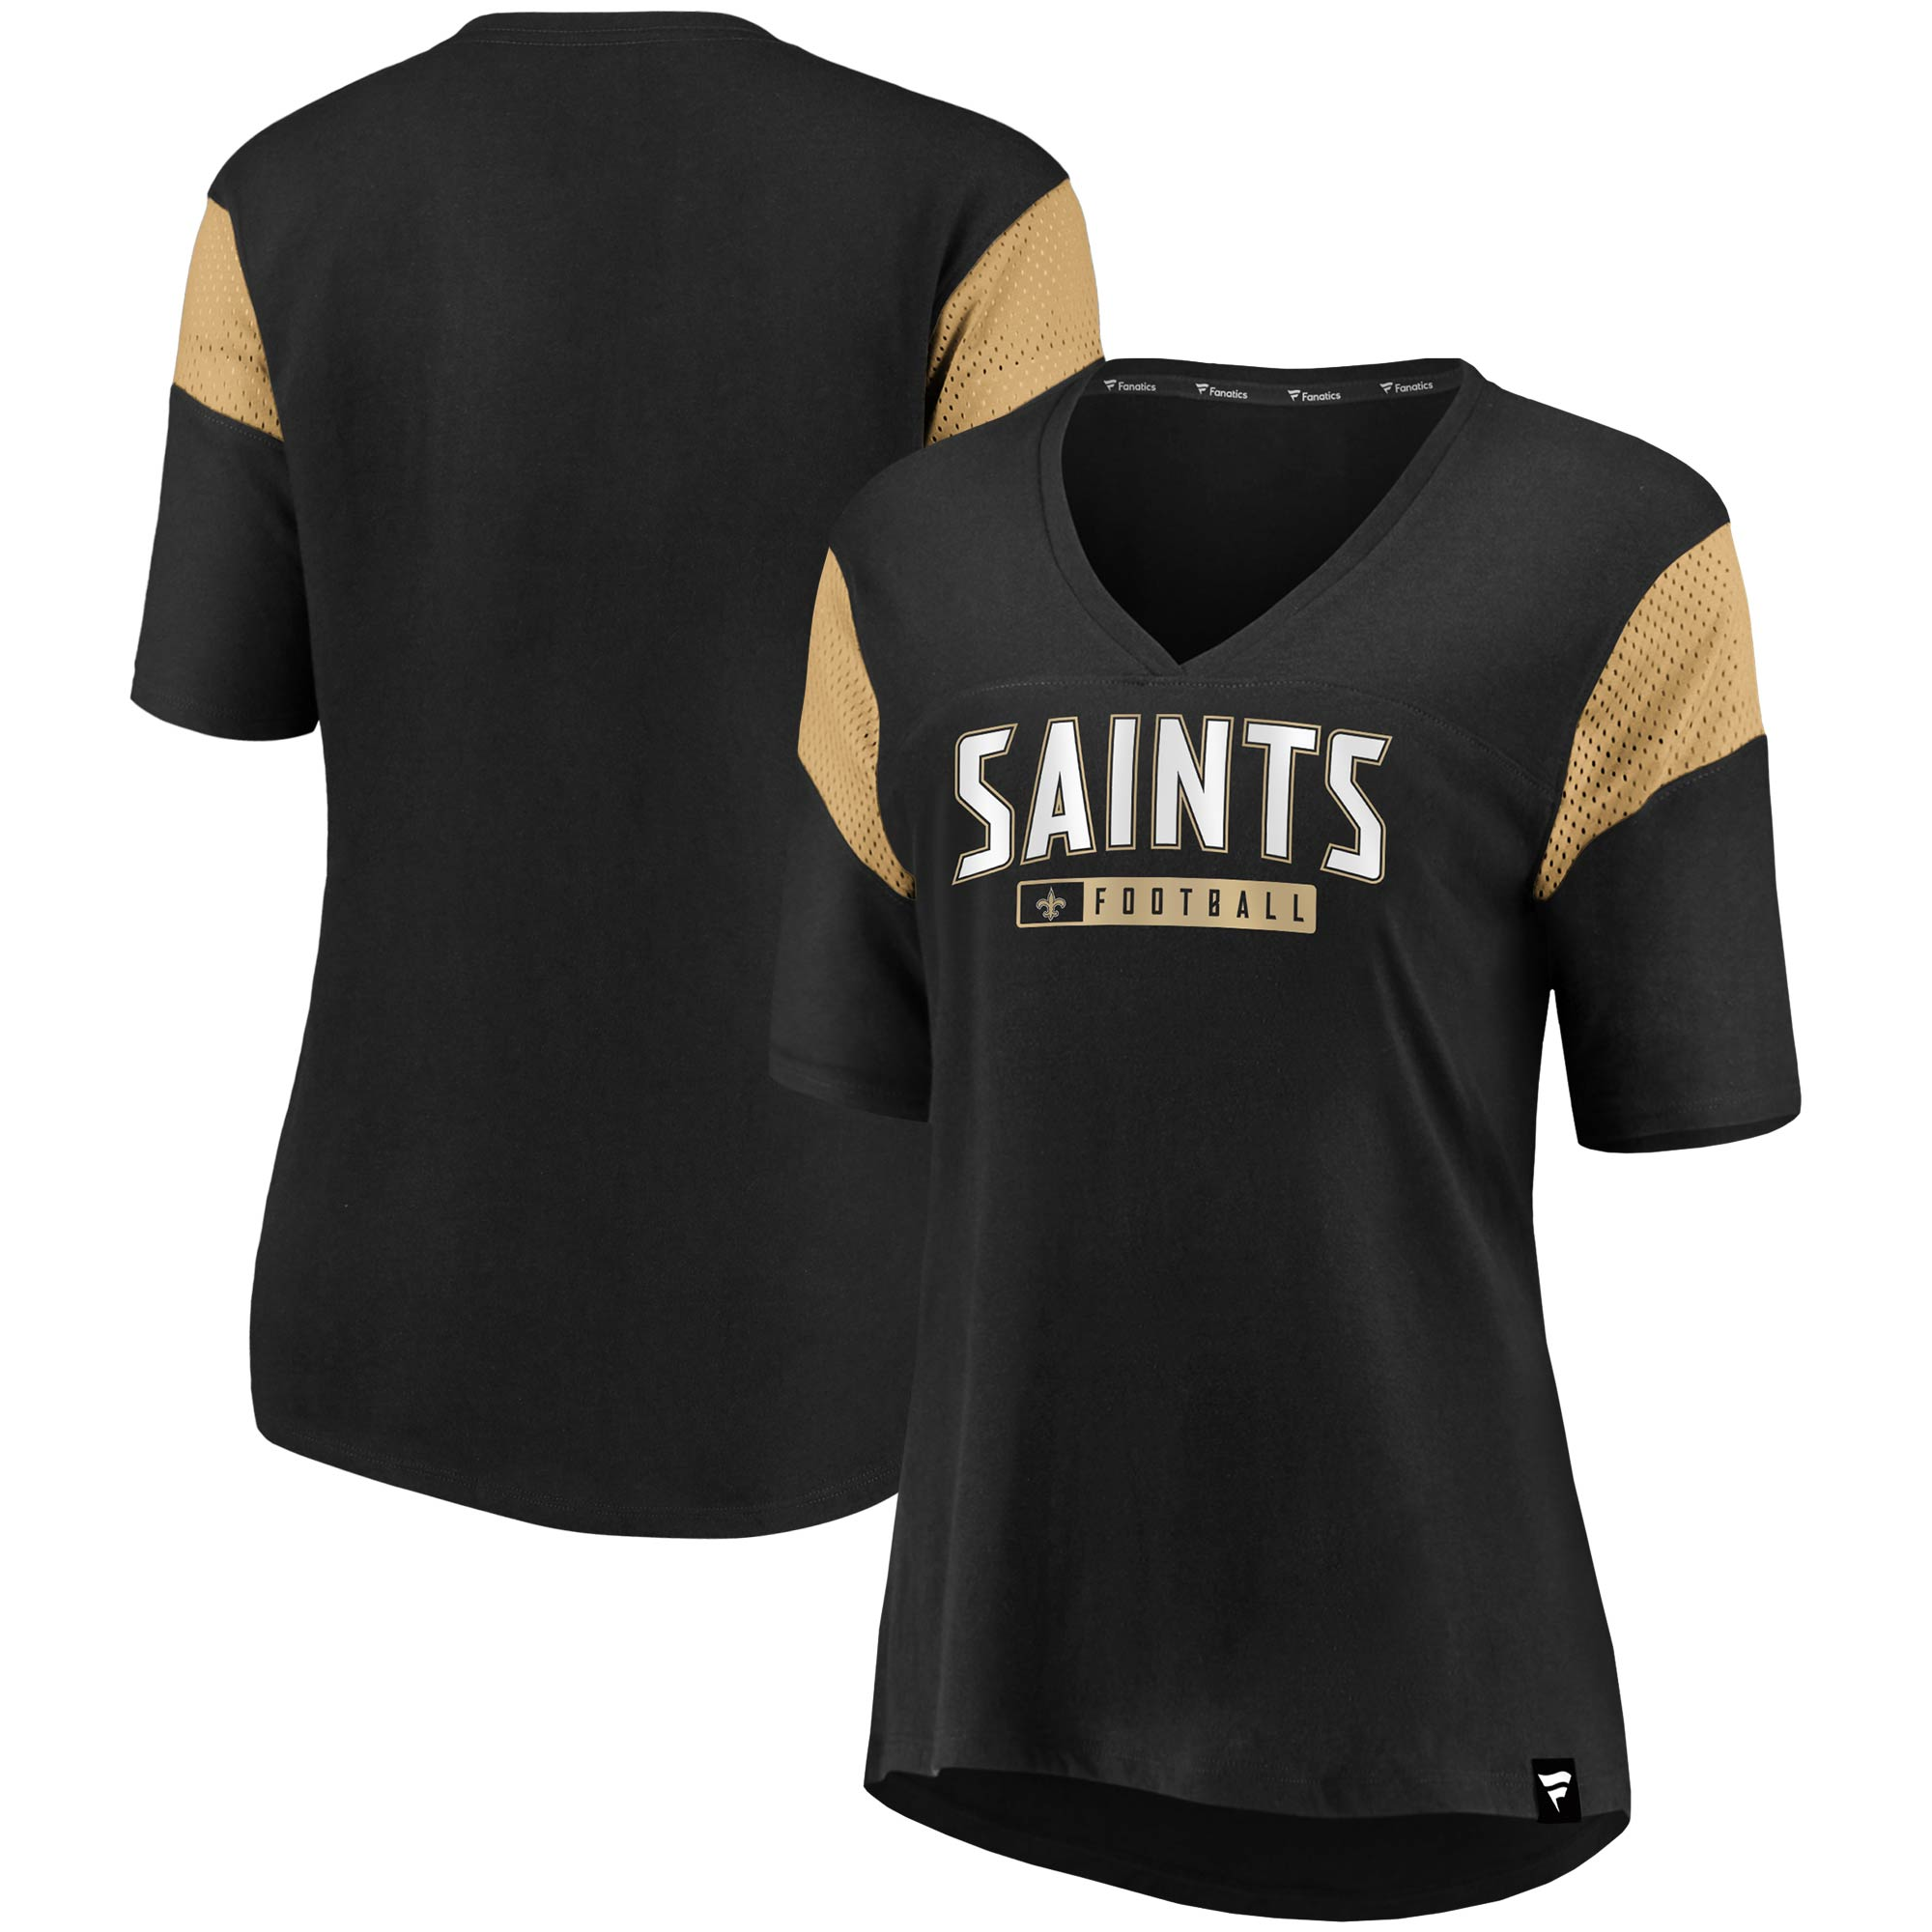 New Orleans Saints NFL Pro Line by Fanatics Branded Women's Iconic Mesh Piecing V-Neck T-Shirt - Black